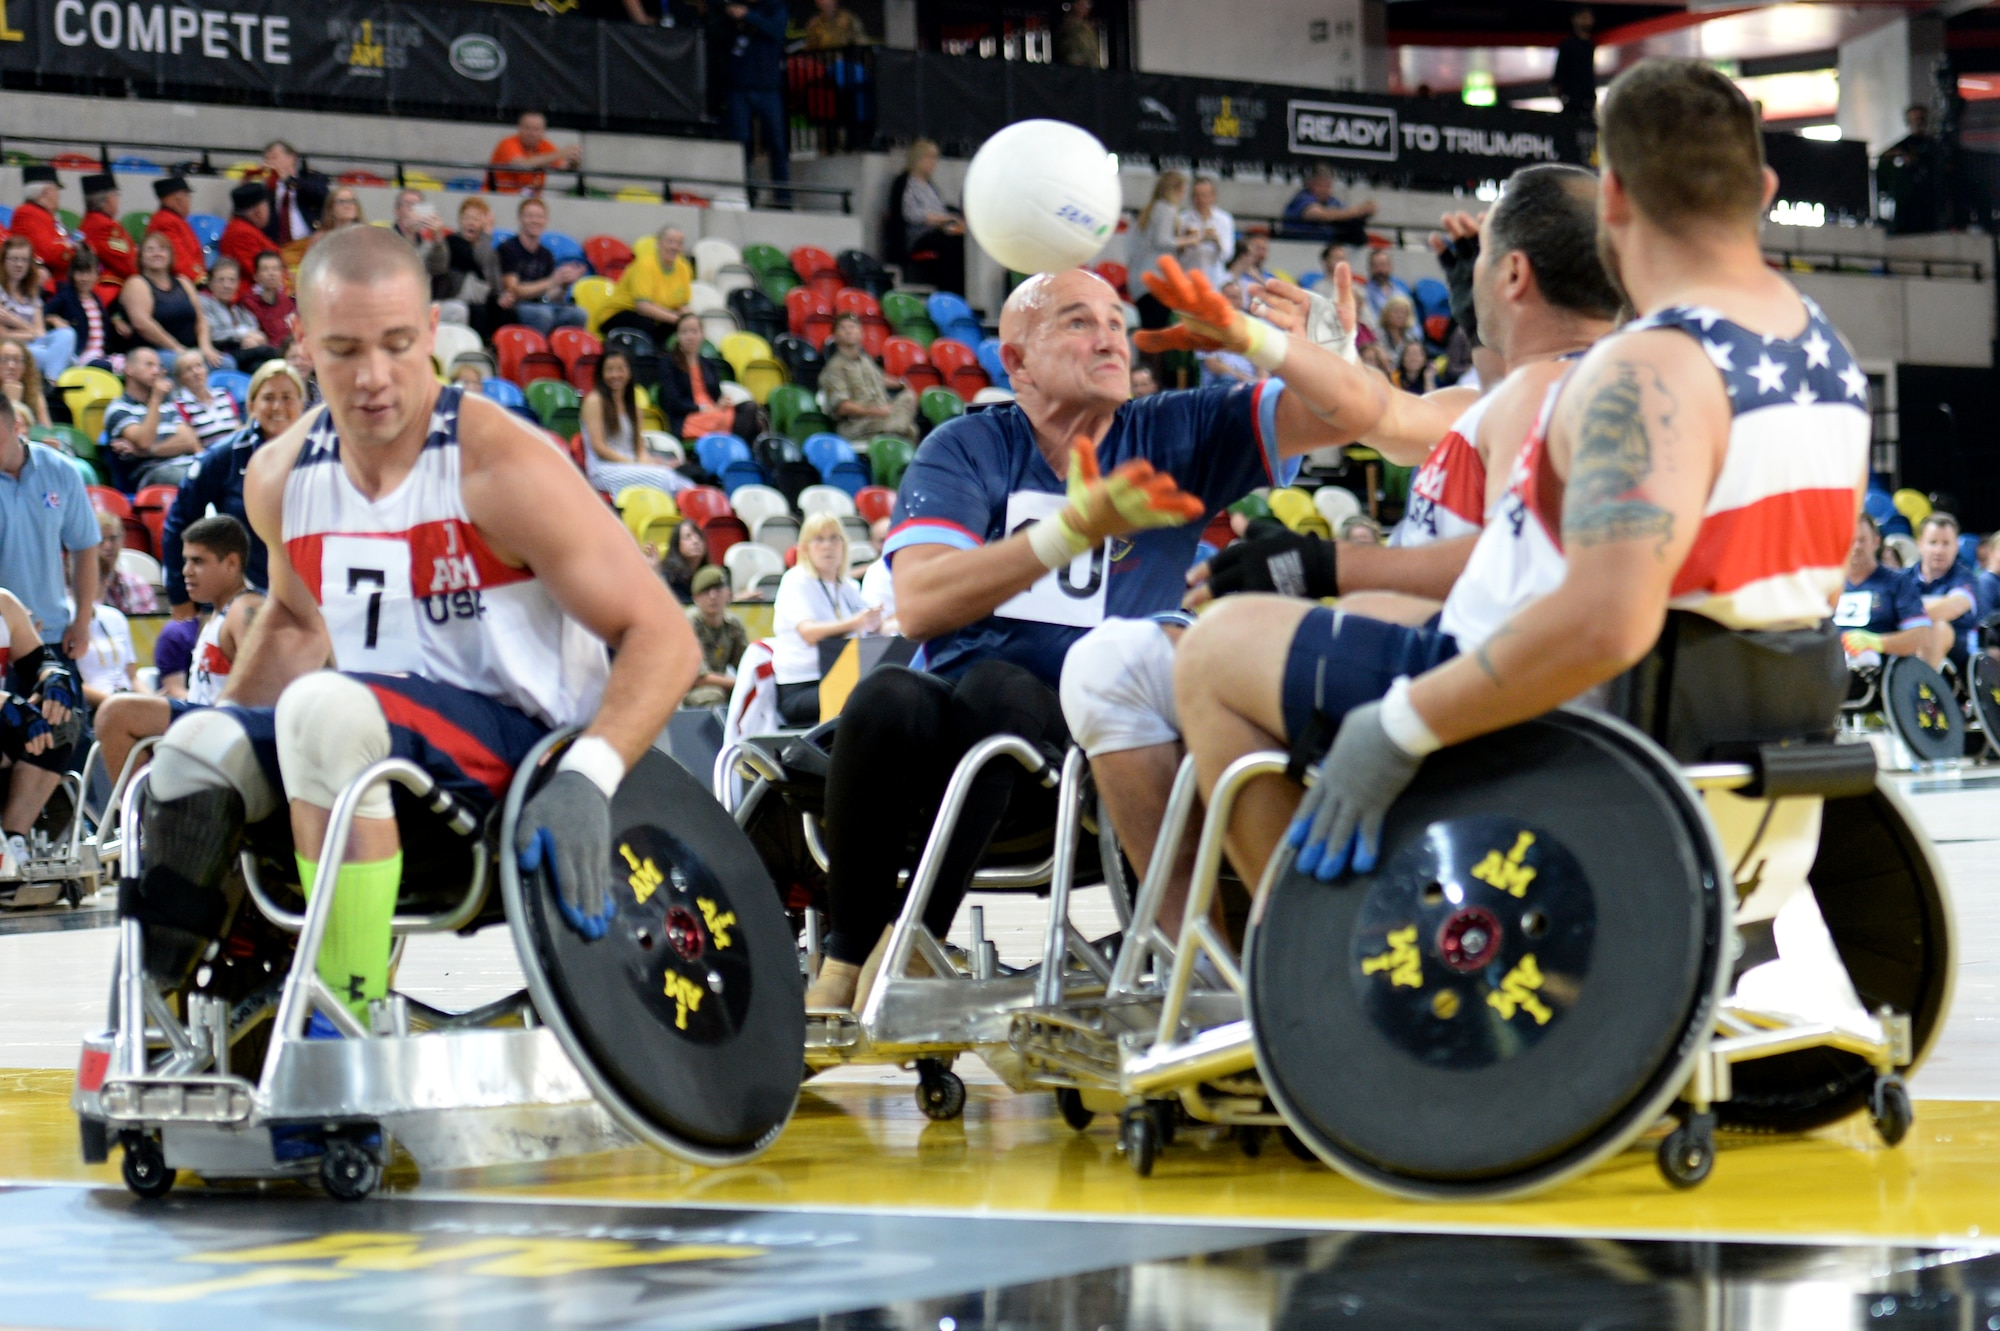 Three American defenders knock the ball away from an Australian player during a wheelchair rugby match Sept. 12, 2014, at the 2014 Invictus Games in London. The U.S. won the match 14-4. Invictus Games is an international competition that brings together wounded, injured and ill service members in the spirit of friendly athletic competition. American Soldiers, Sailors, Airmen and Marines are representing the U.S. in the competition which is taking place Sept. 10-14. (U.S. Navy photo/Mass Communication Specialist 2nd Class Joshua D. Sheppard)